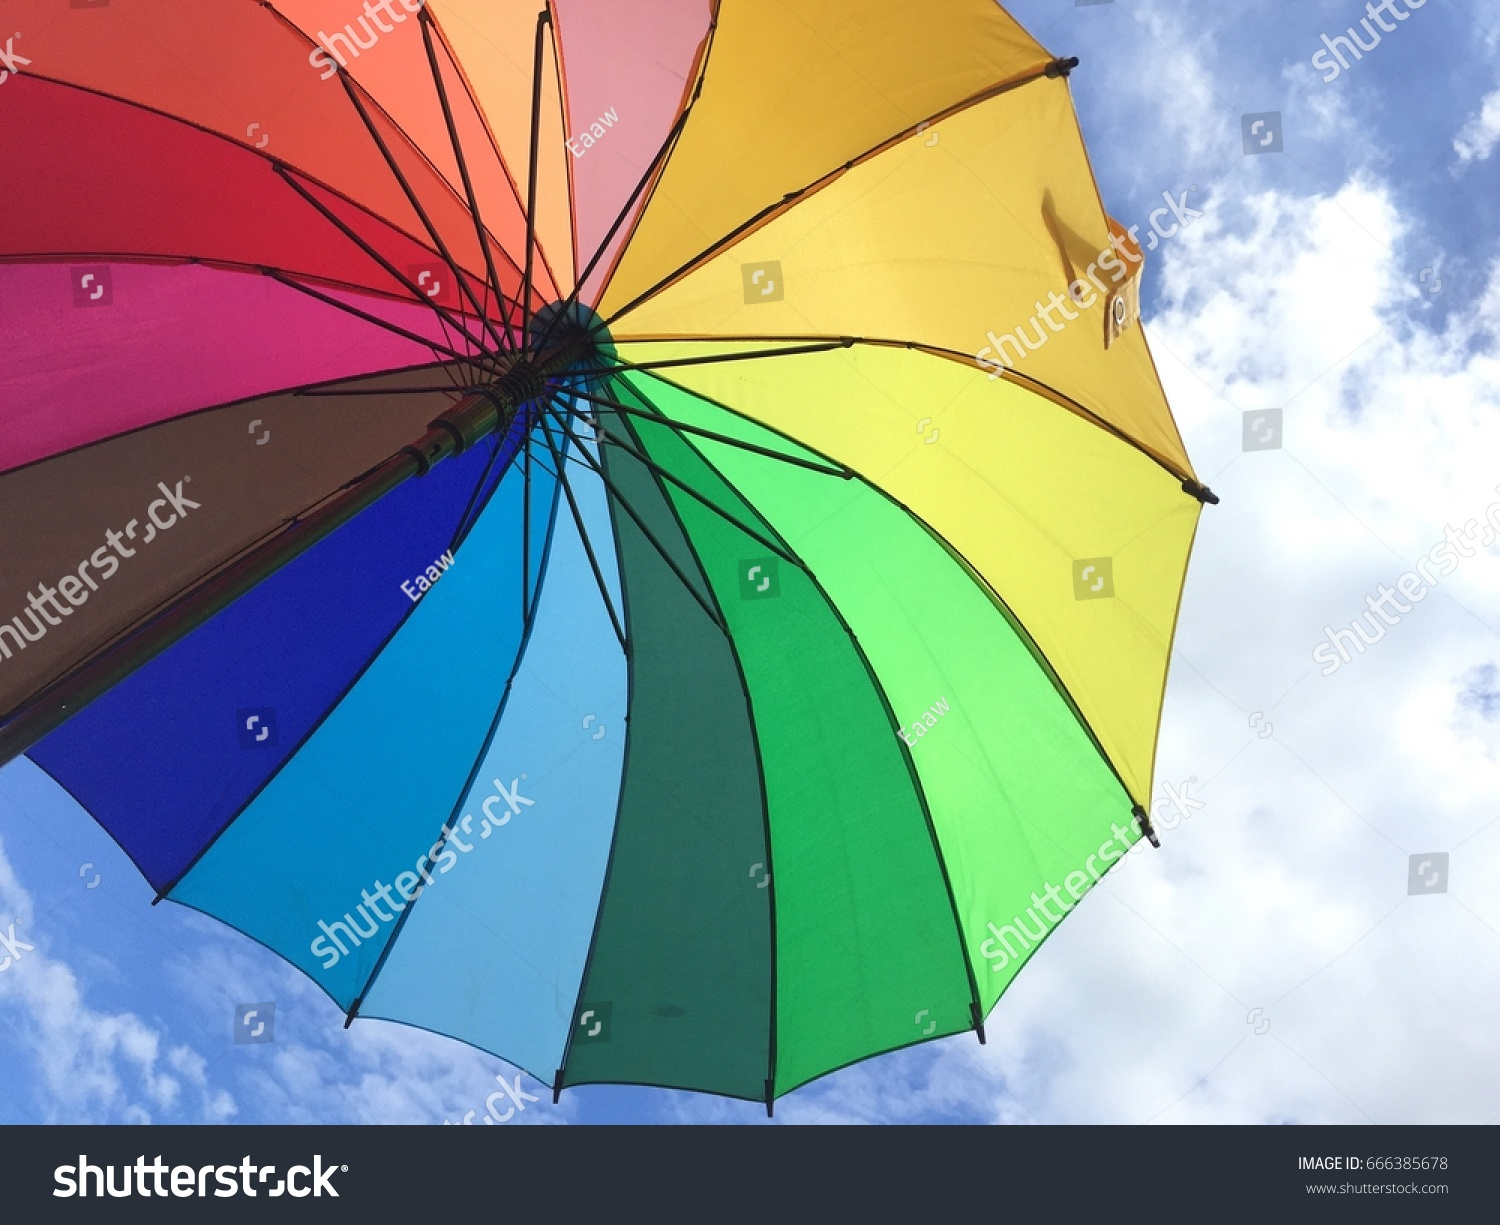 Colorful Umbrella Clearly Sky Stock Photo (Royalty Free) 666385678 ...